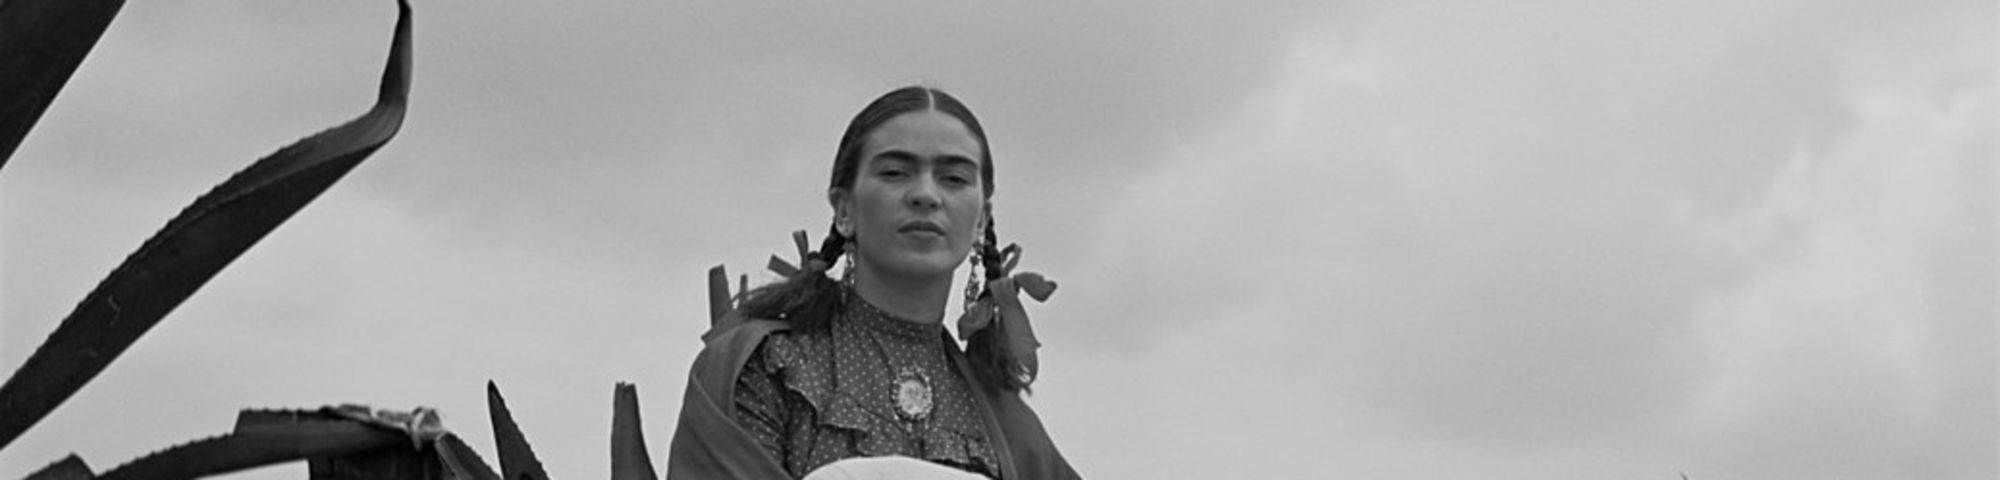 Frida Kahlo seated next to an agave plant, during a photo shoot for Vogue magazine